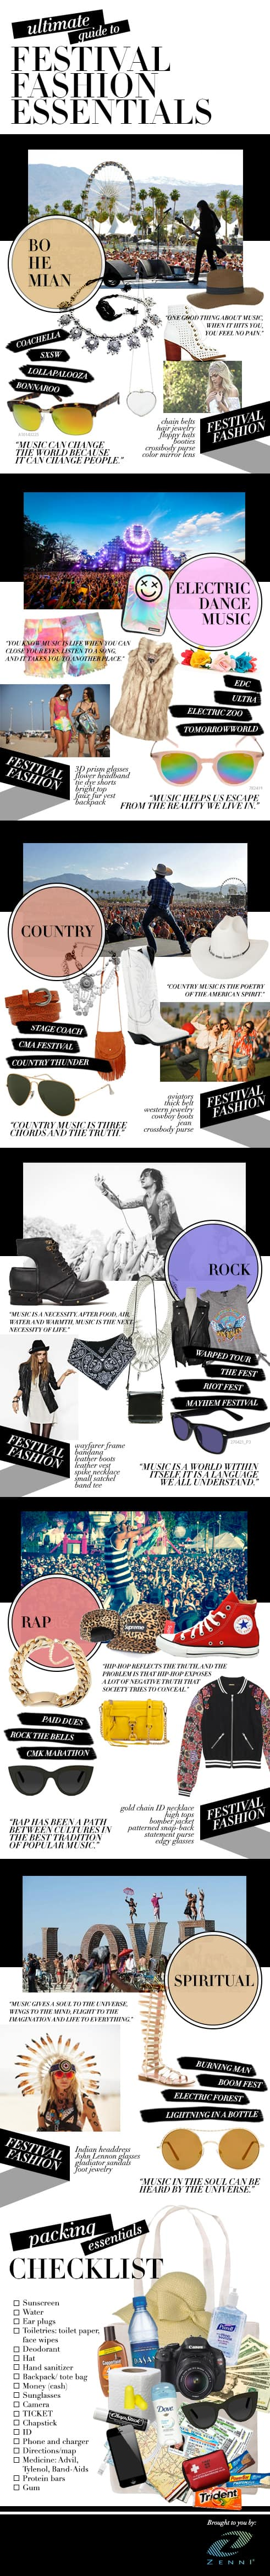 Ultimate Guide to Music Festival Fashion Essentials - Infographic